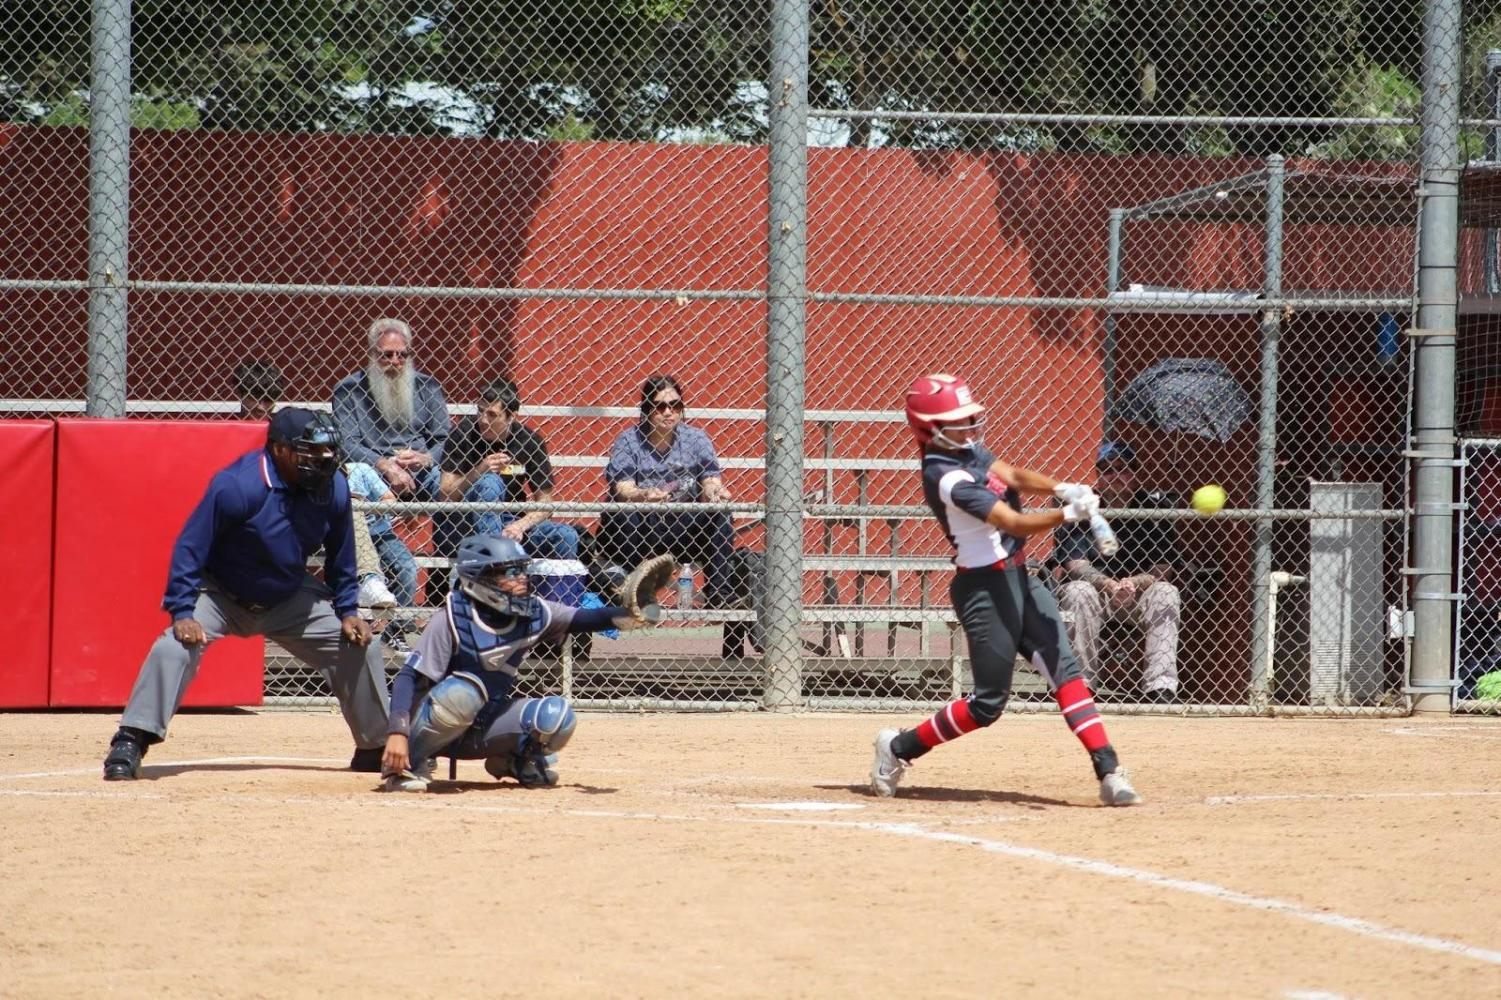 Fresno City College center fielder Savanna Pena belts a double during the Rams' game against Cerro Coso on April 16, 2019 at the FCC Softball Diamond.